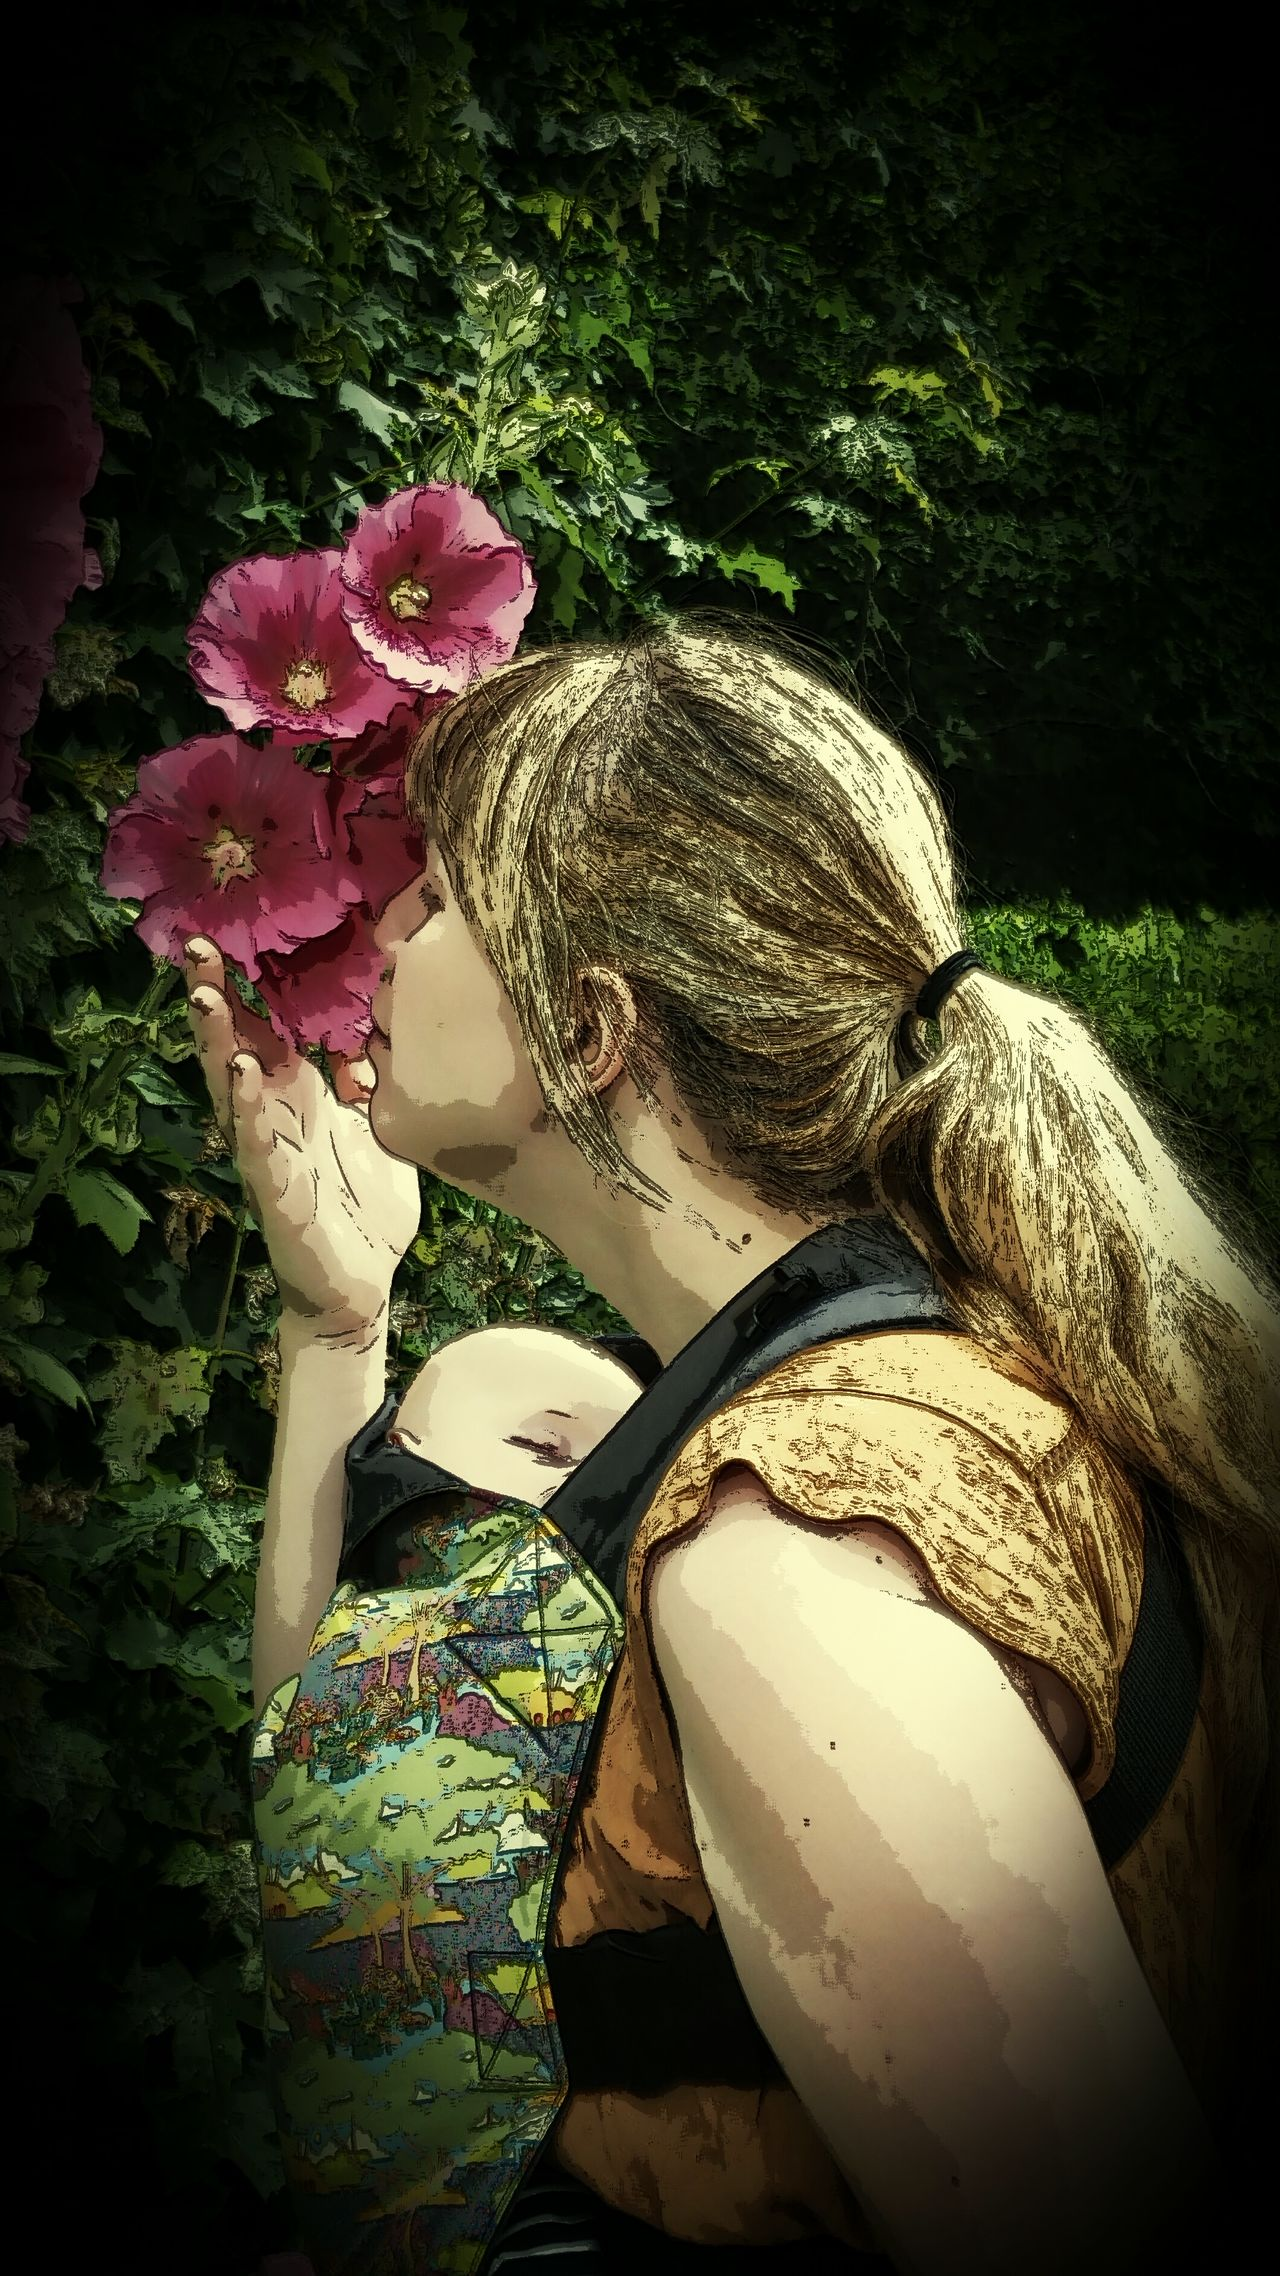 Showcase July Flowers Natural Beauty Comic Filter Babywearing Baby Sling Connecta Natural Parenting Mothers Love Samsungphotography Colour Of Life